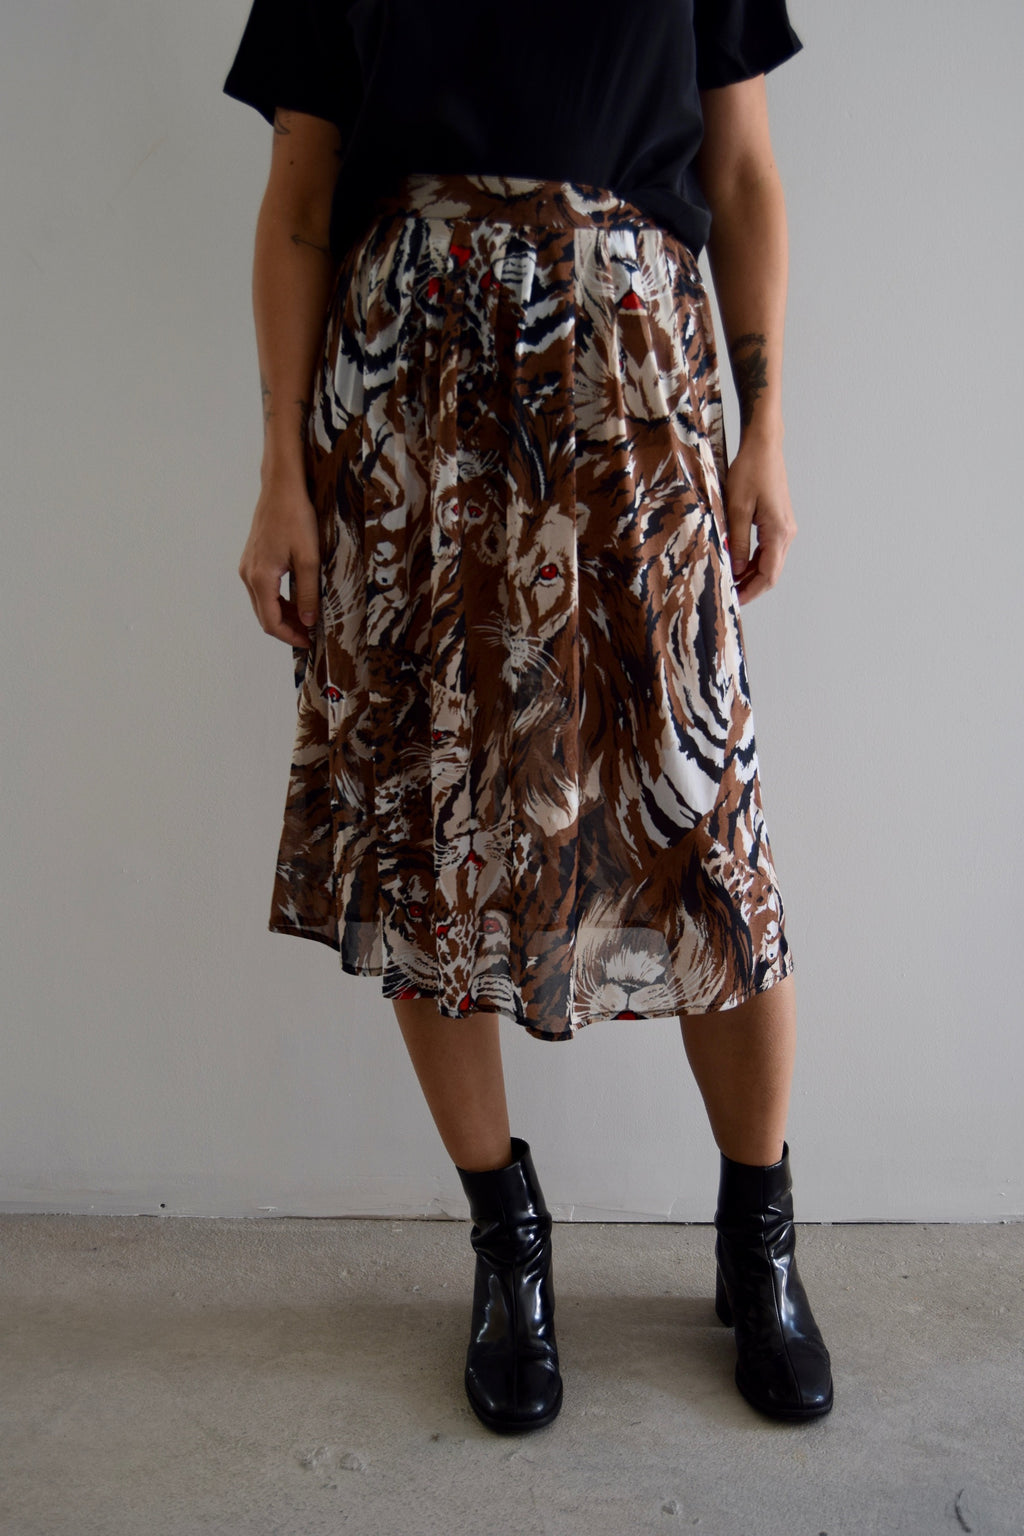 Vintage Fierce Feline Midi Skirt FREE SHIPPING TO THE U.S.